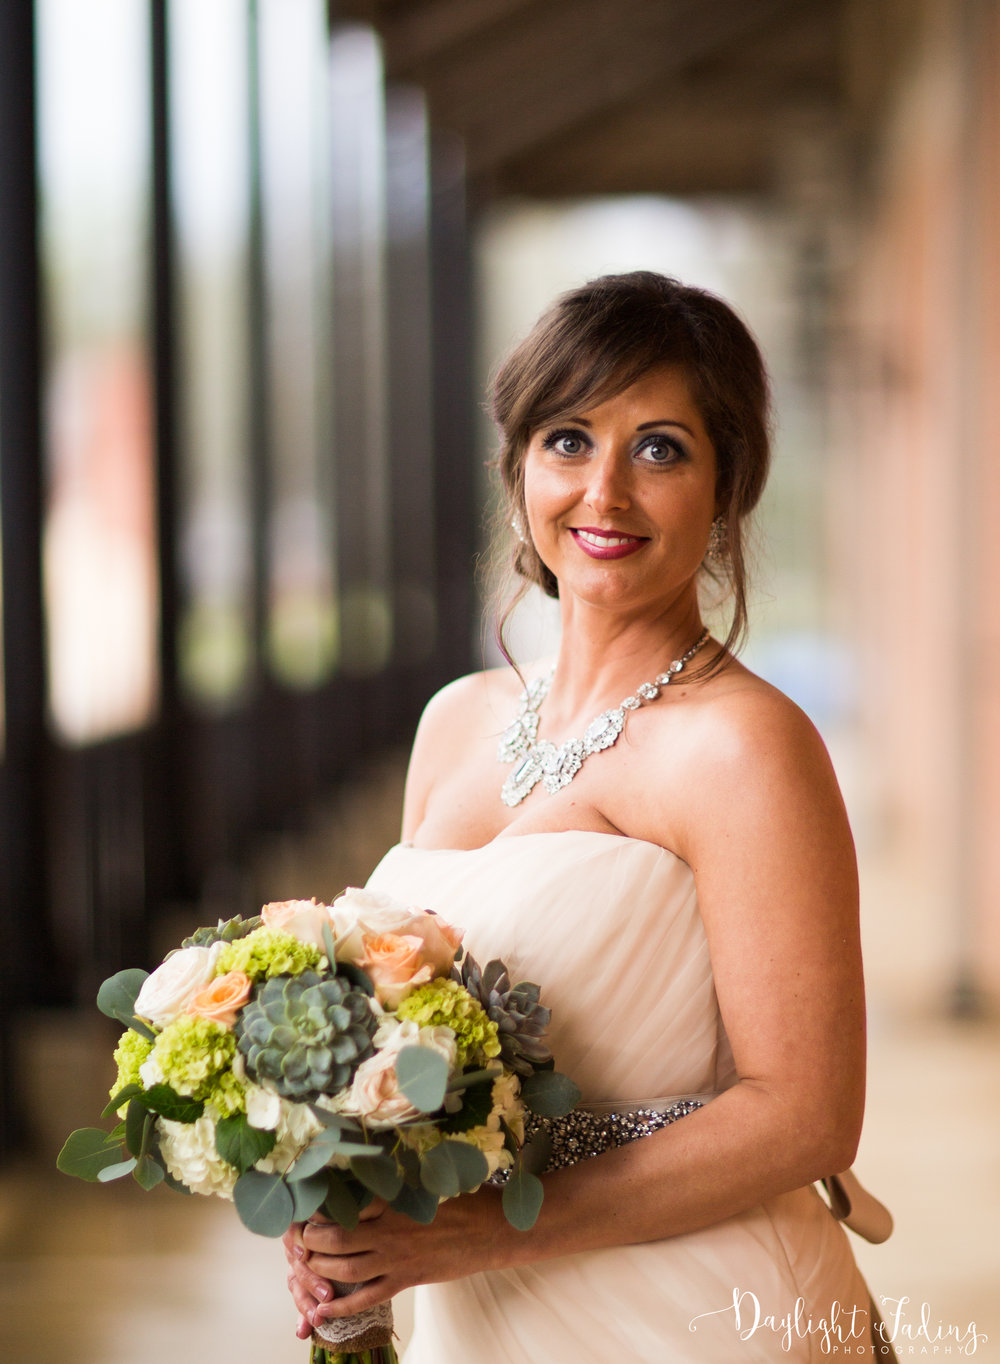 Natchitoches Event Center Wedding Photographer - daylightfadingphotography.com